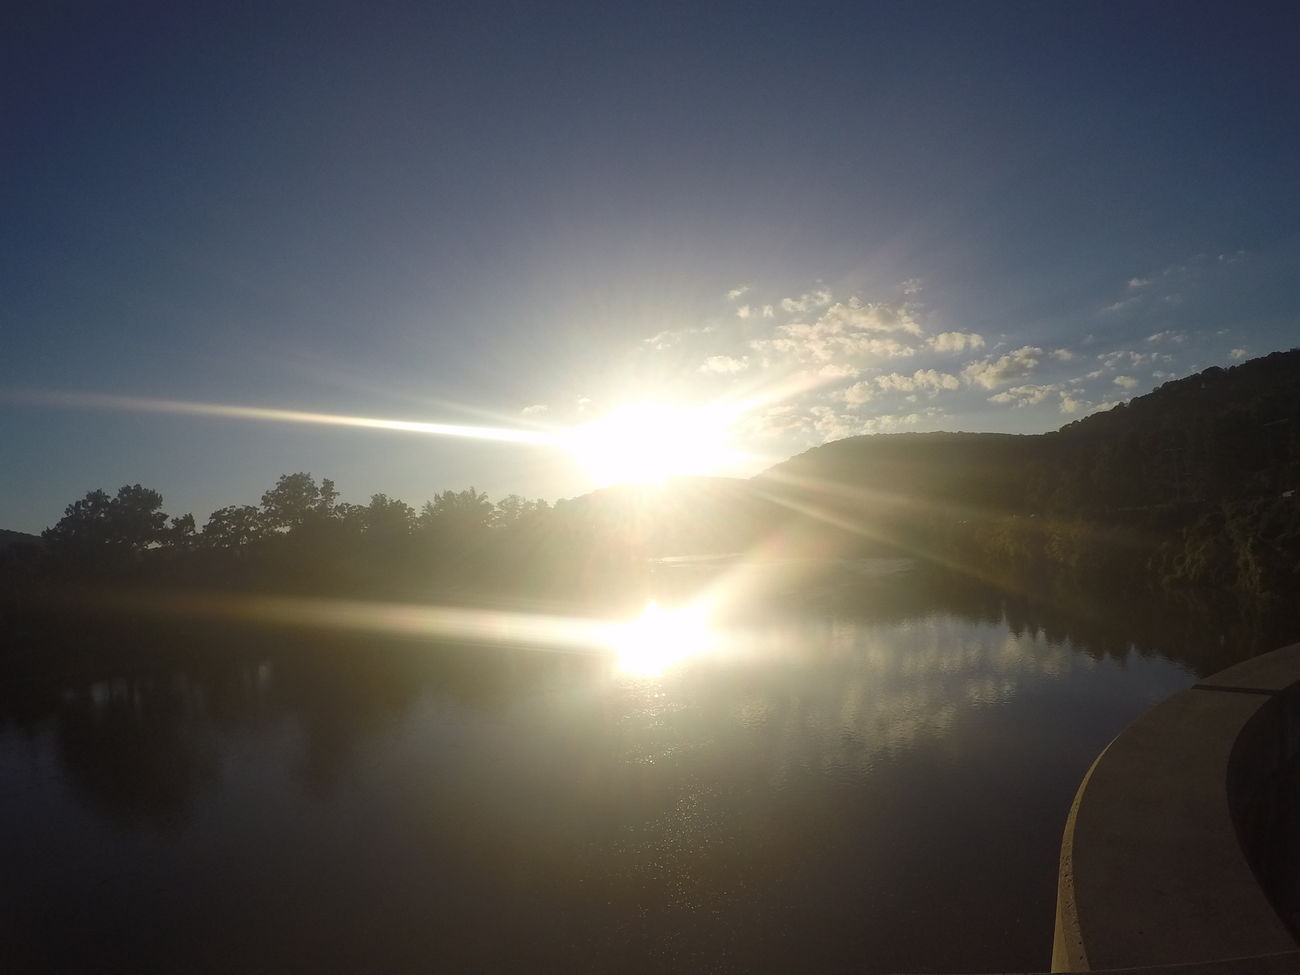 Two sun rays 1pix... Sunlight Sunbeam Tranquil Scene Beauty In Nature Reflection No People Non-urban Scene Tranquility Being Creative. Expressing Myself. No Filter, No Edit, Just Photography Sawonmyadventure Only God Can Create Such Beauty Go Pro Hero 4 Go Pro Pixing Water Allegheny River